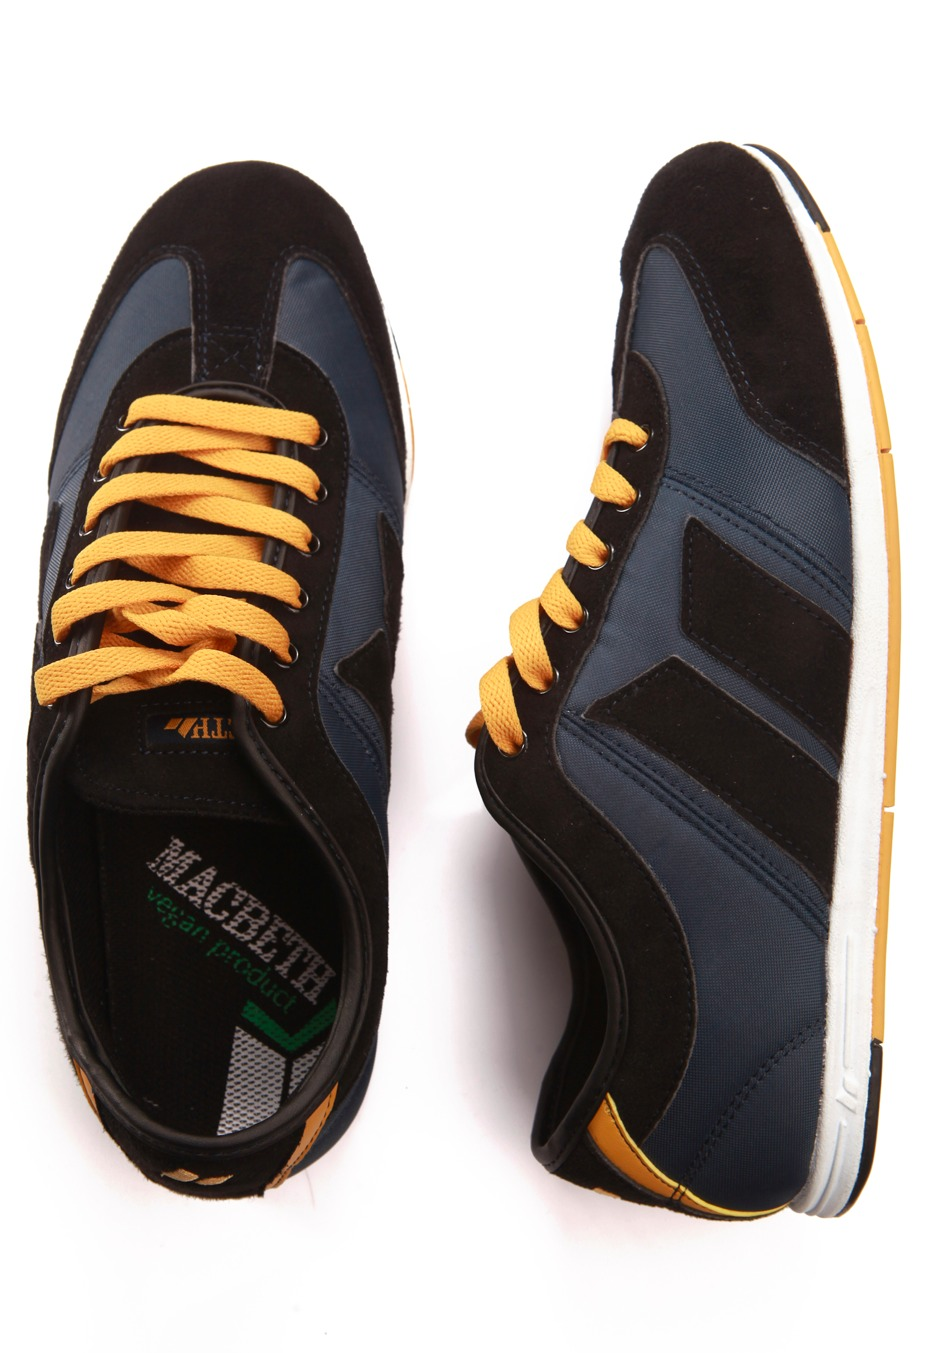 Macbeth Shoes Price In Malaysia